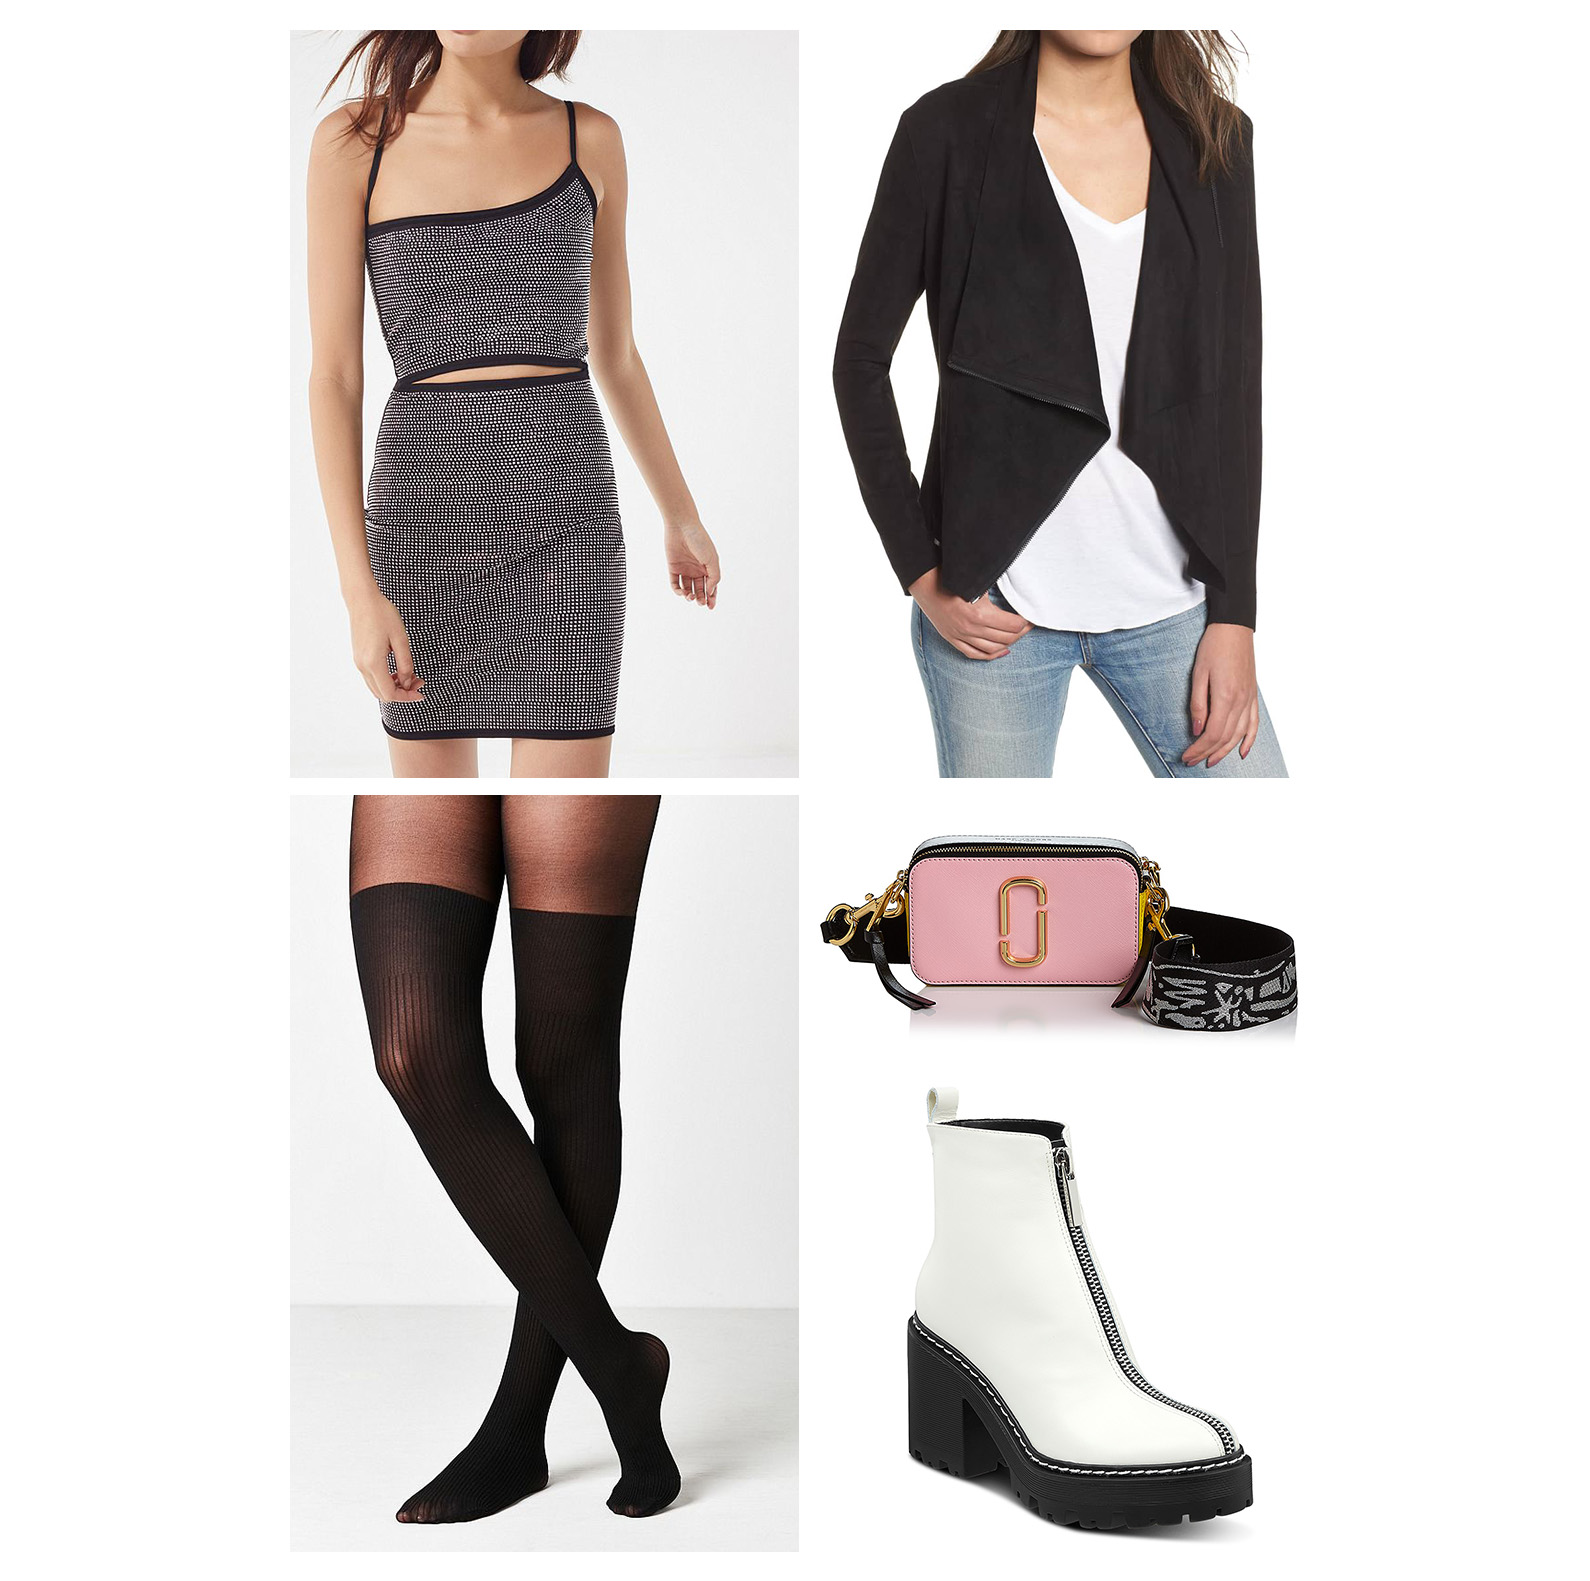 Fall dinner outfit idea - black bodycon dress, thigh-high tights, pink camera bag, black jacket, and white chunky combat booties!